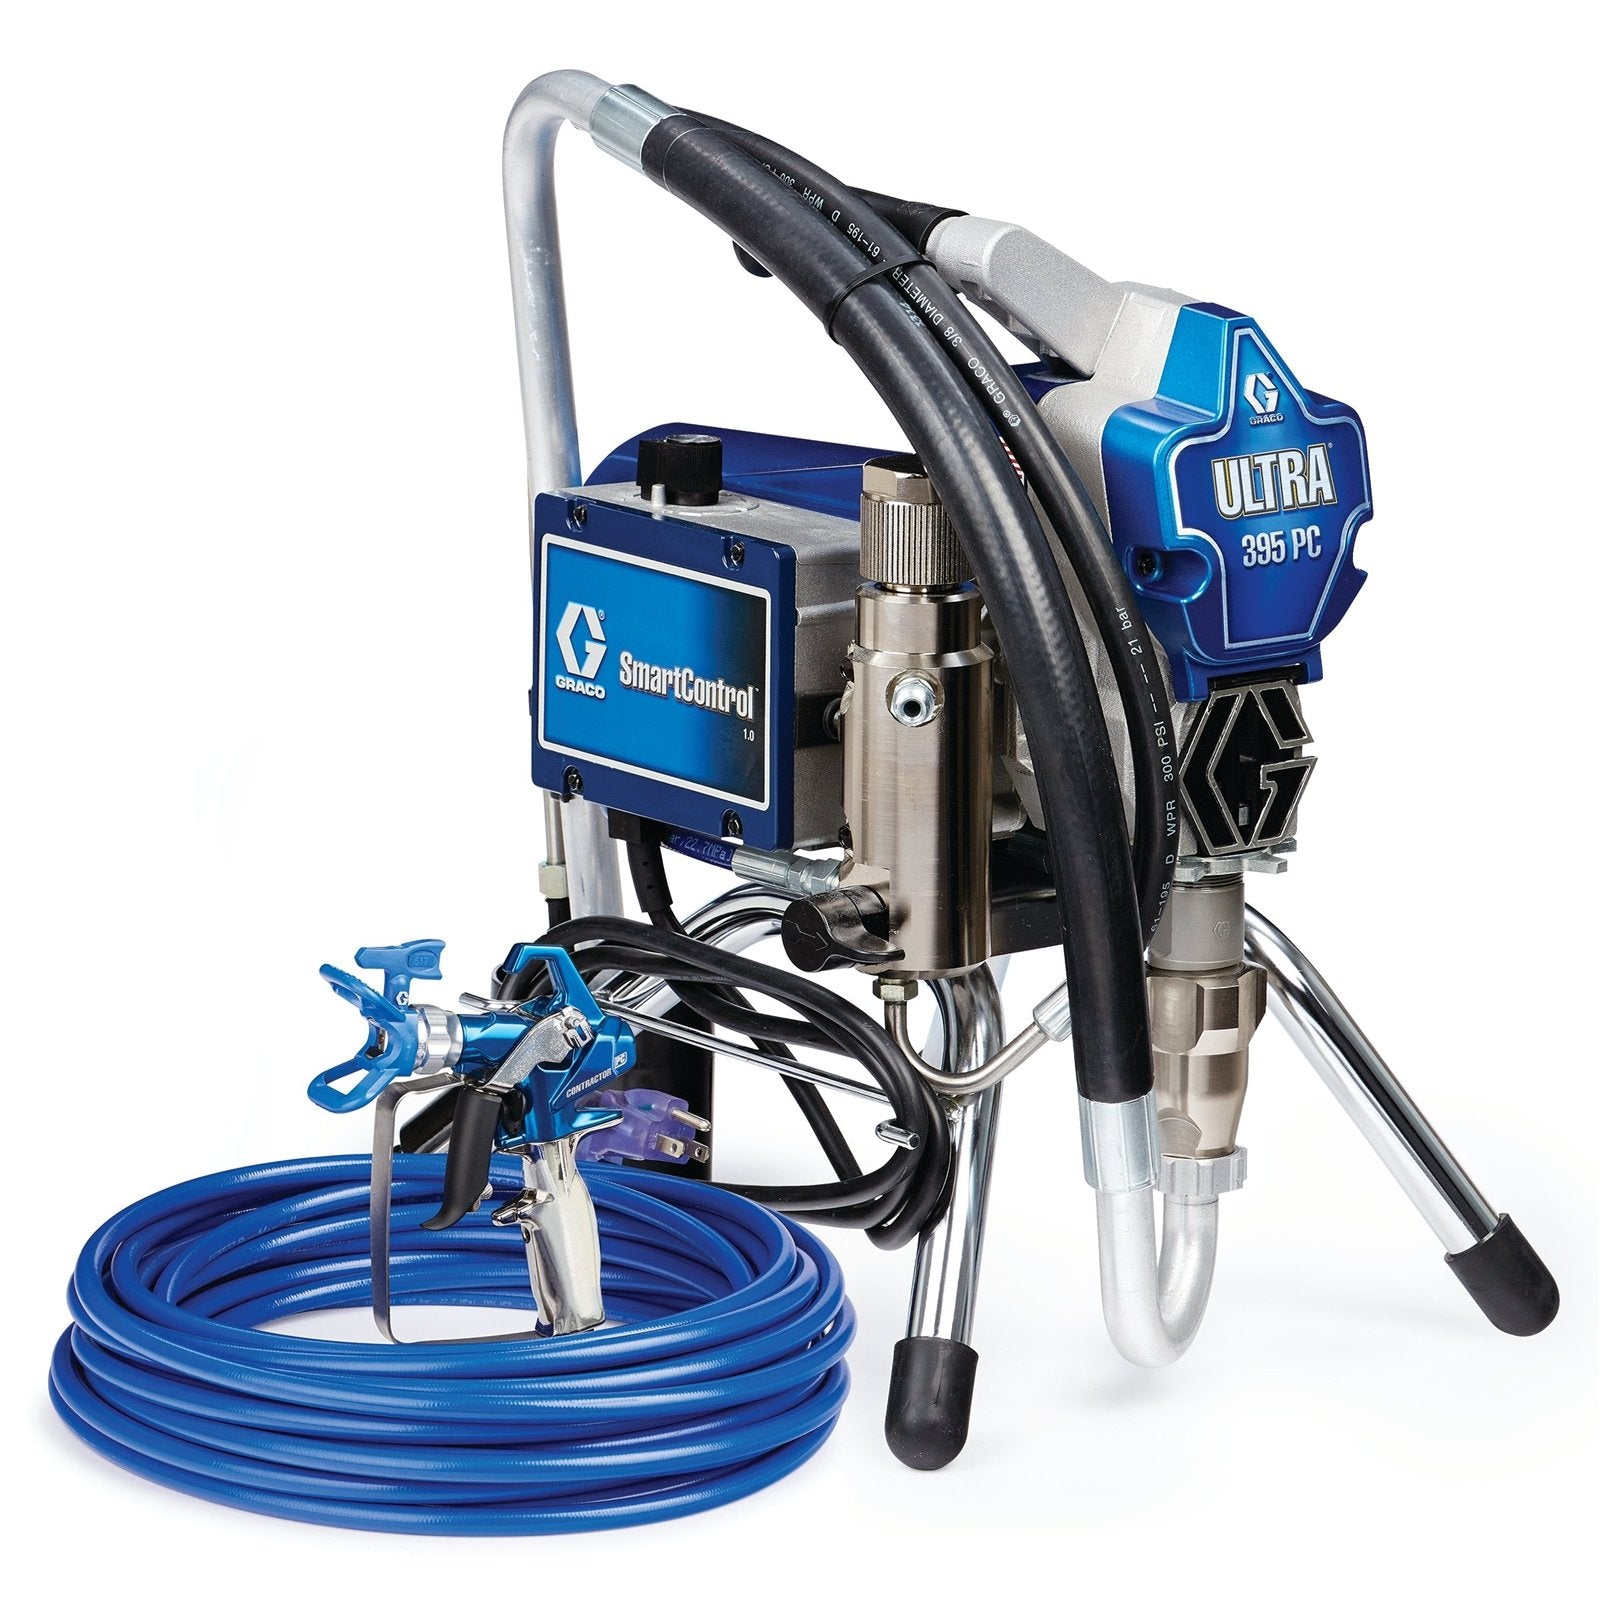 Graco Electric Airless Paint Sprayer Stand, available at Aboff's in New York and Long Island.